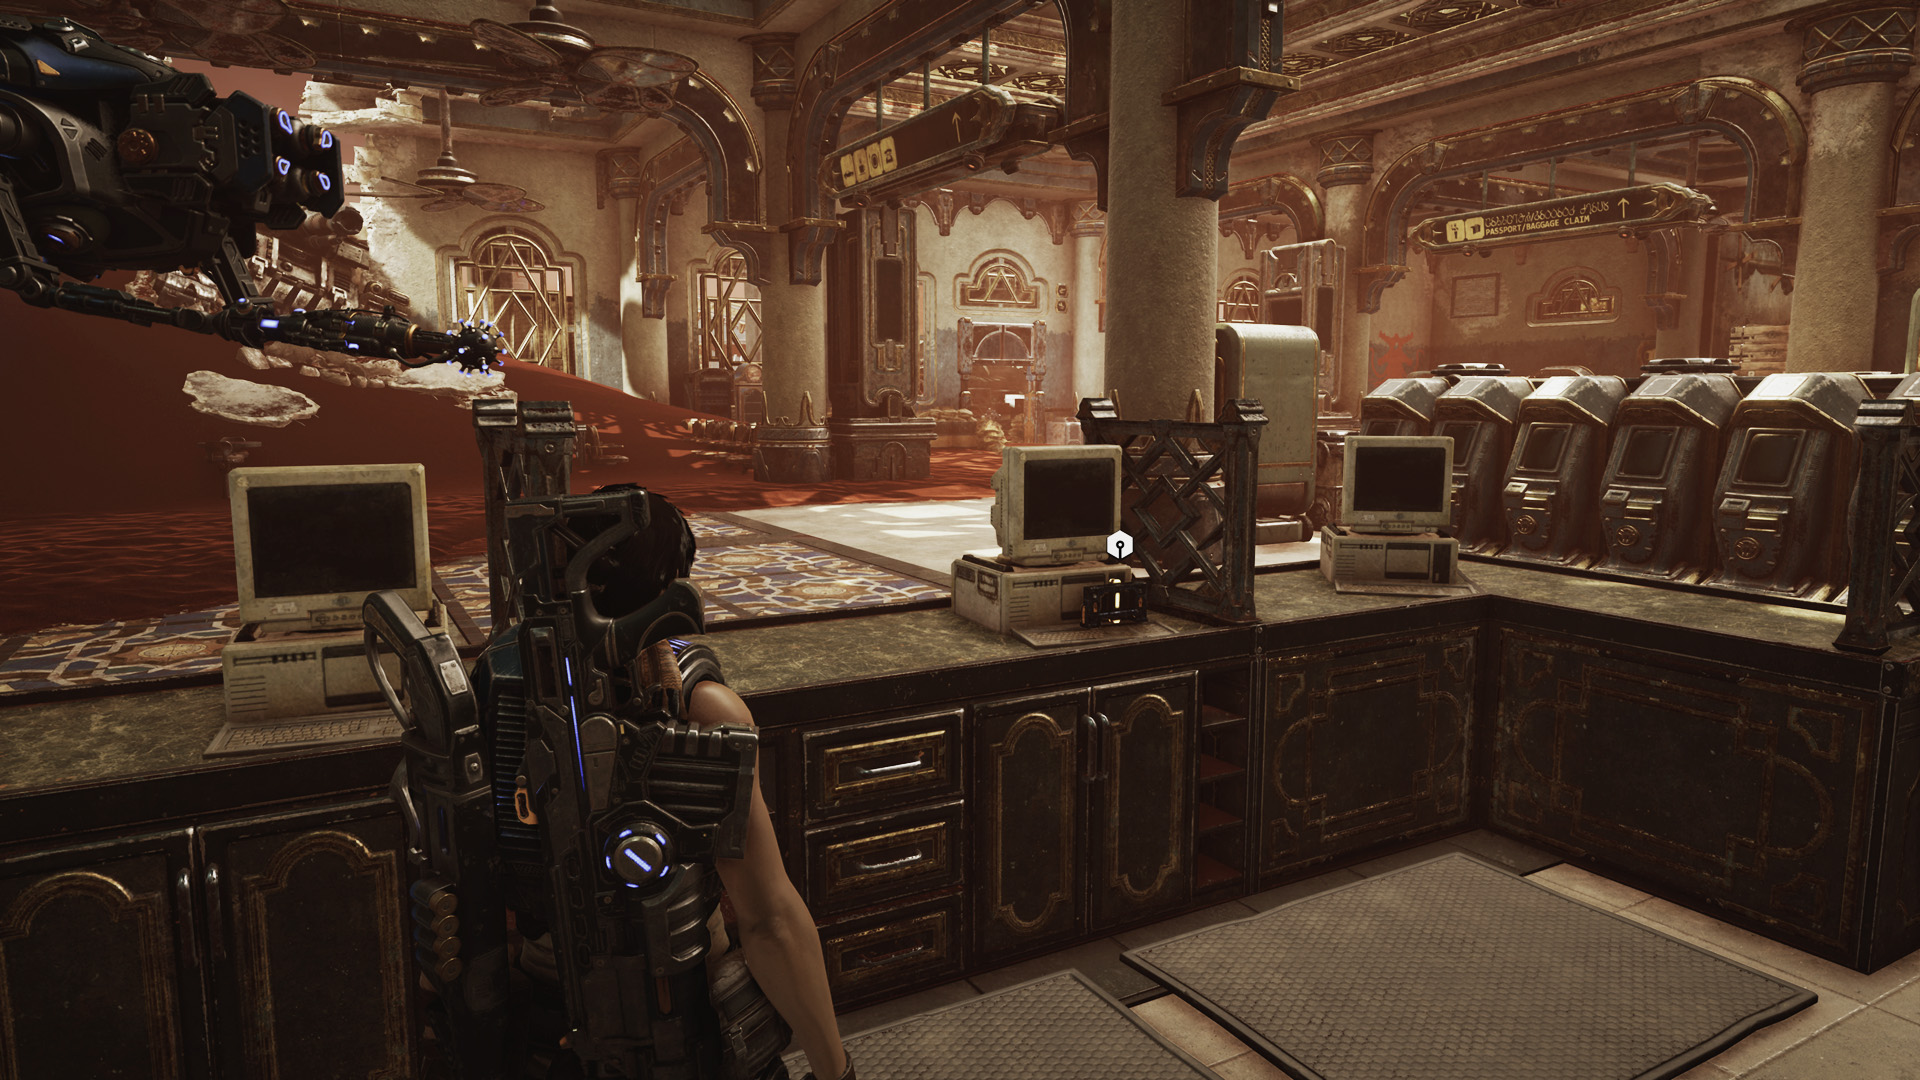 The Division 2 endgame guide: What to do after you reach